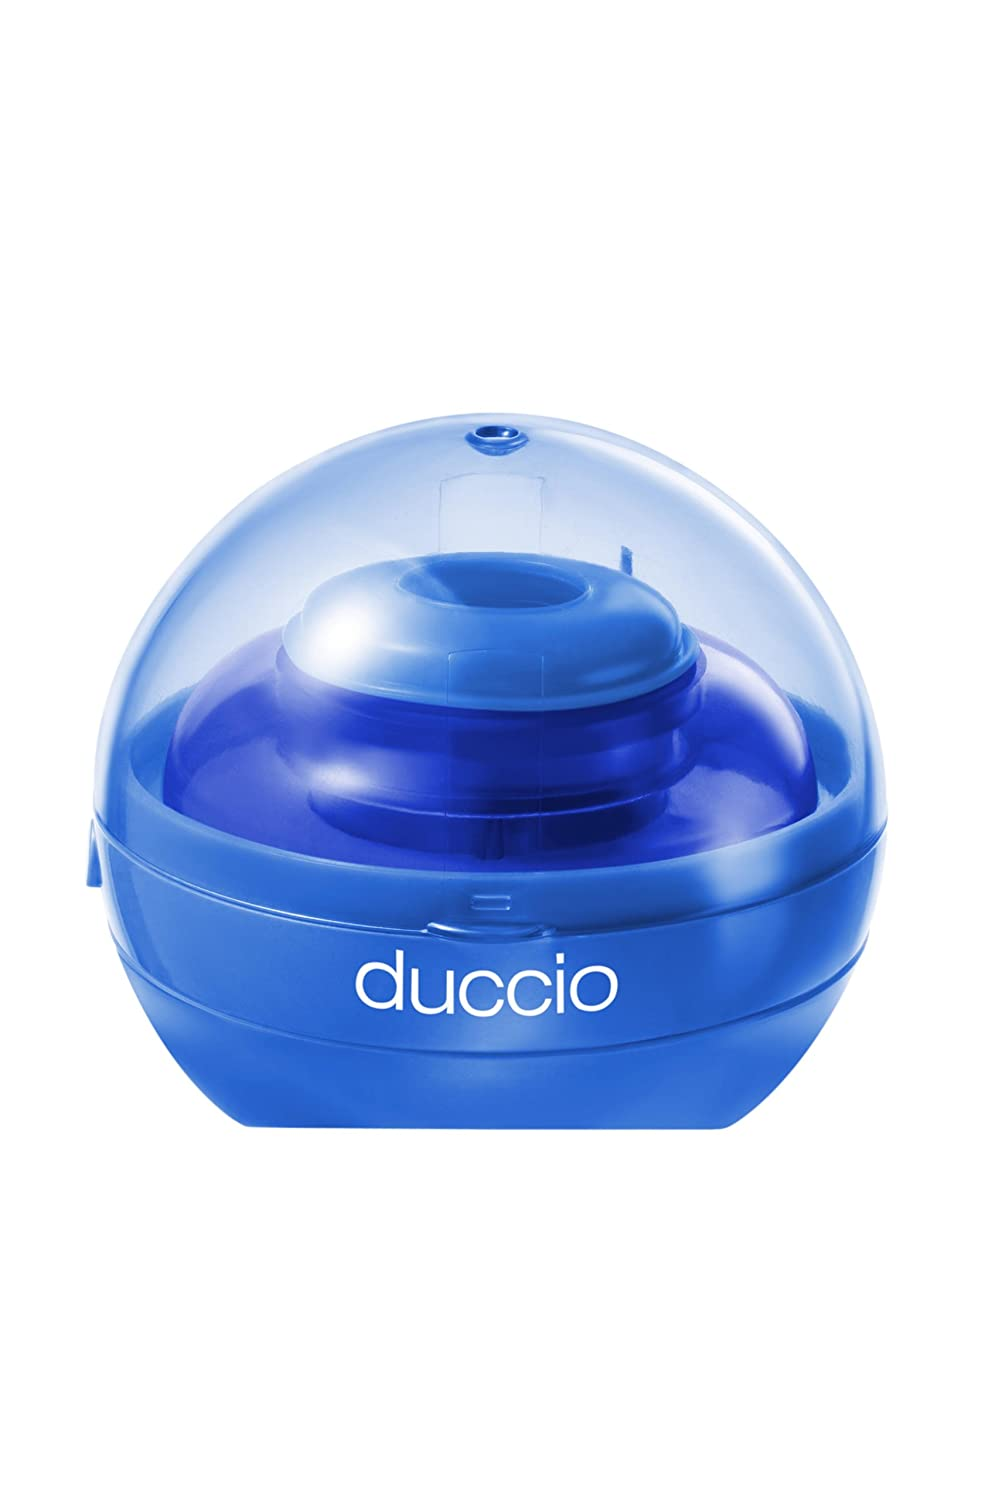 Amazon.com: Forty Weeks Duccio Sterilizer Blue: Health & Personal Care